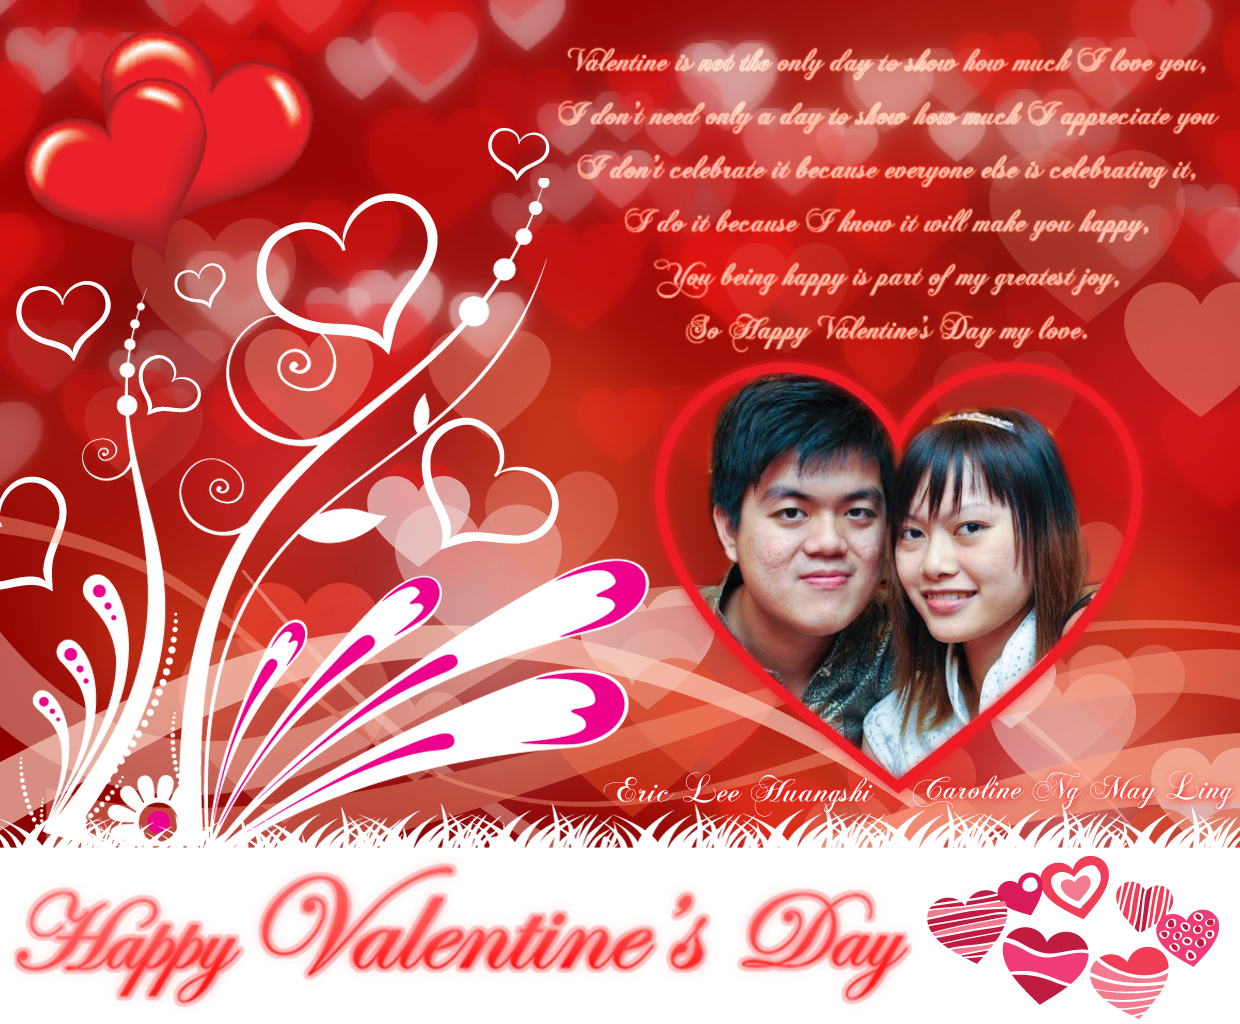 5hd happy valentines day 2014 greetings collection with love the above 5hd happy valentines day 2014 greetings collection with love quotes customized for whatsapp messenger for android to send to whatsapp lovers or kristyandbryce Image collections